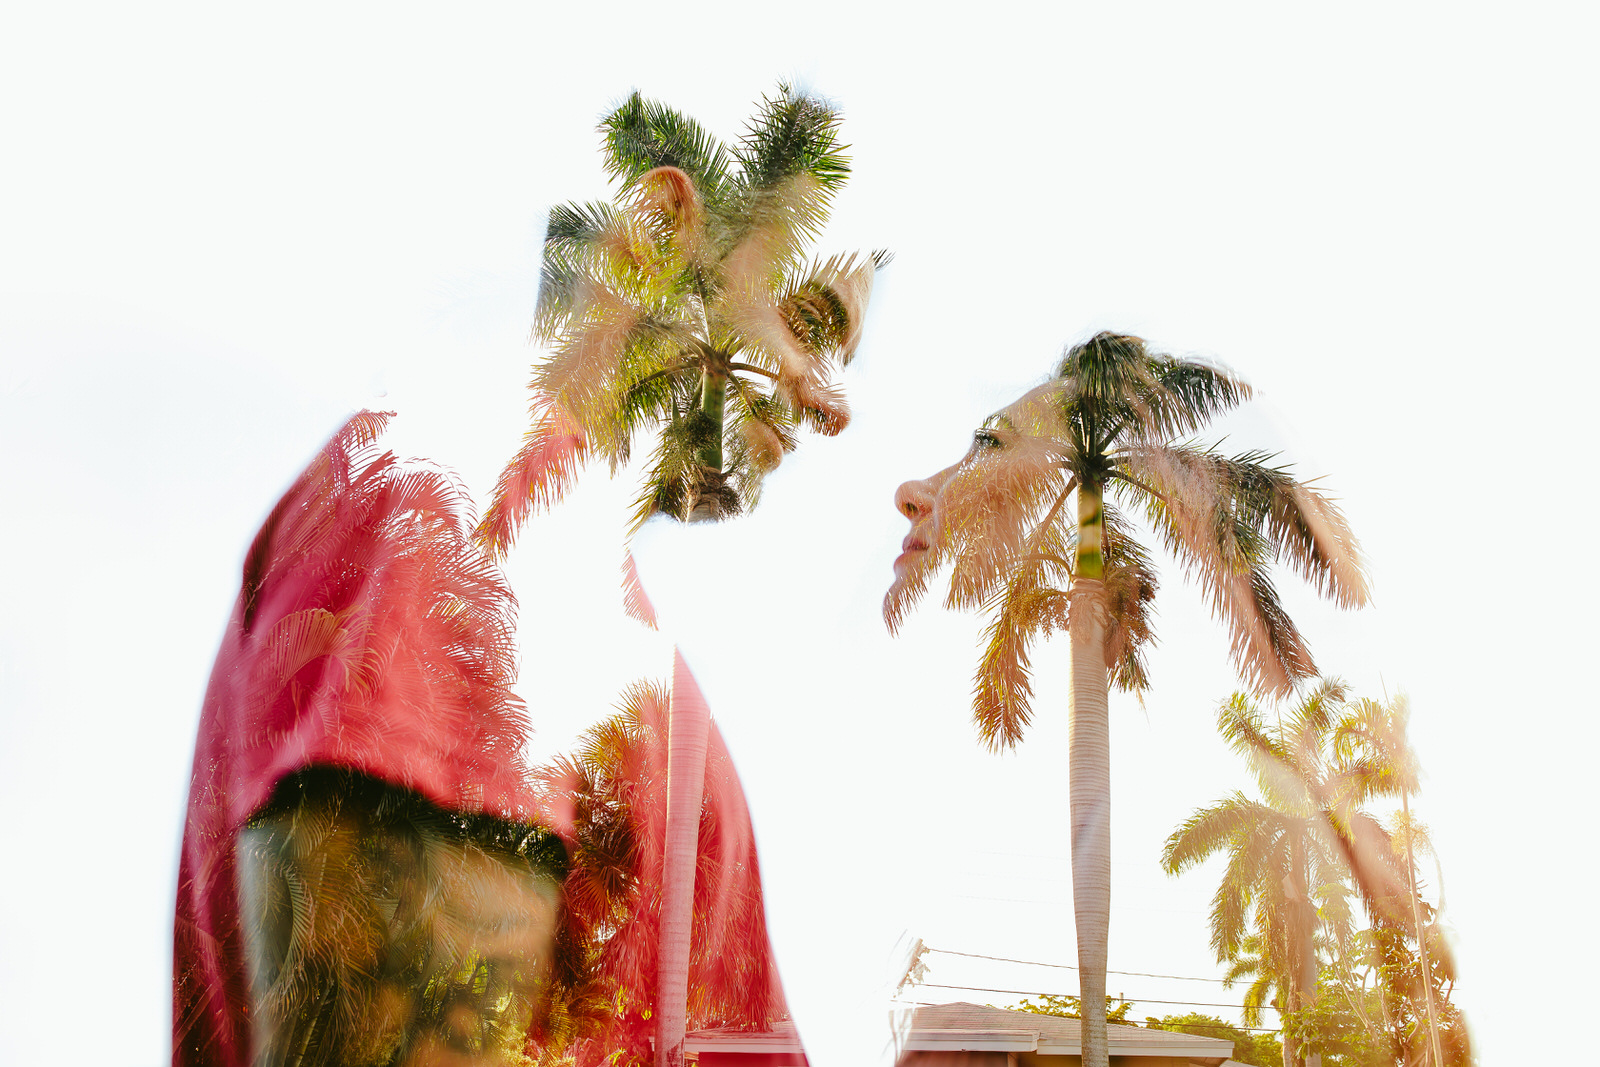 engagement-session-fort-lauderdale-day-in-the-life-tiny-house-photo-palm-tree-double-exposure-1.jpg